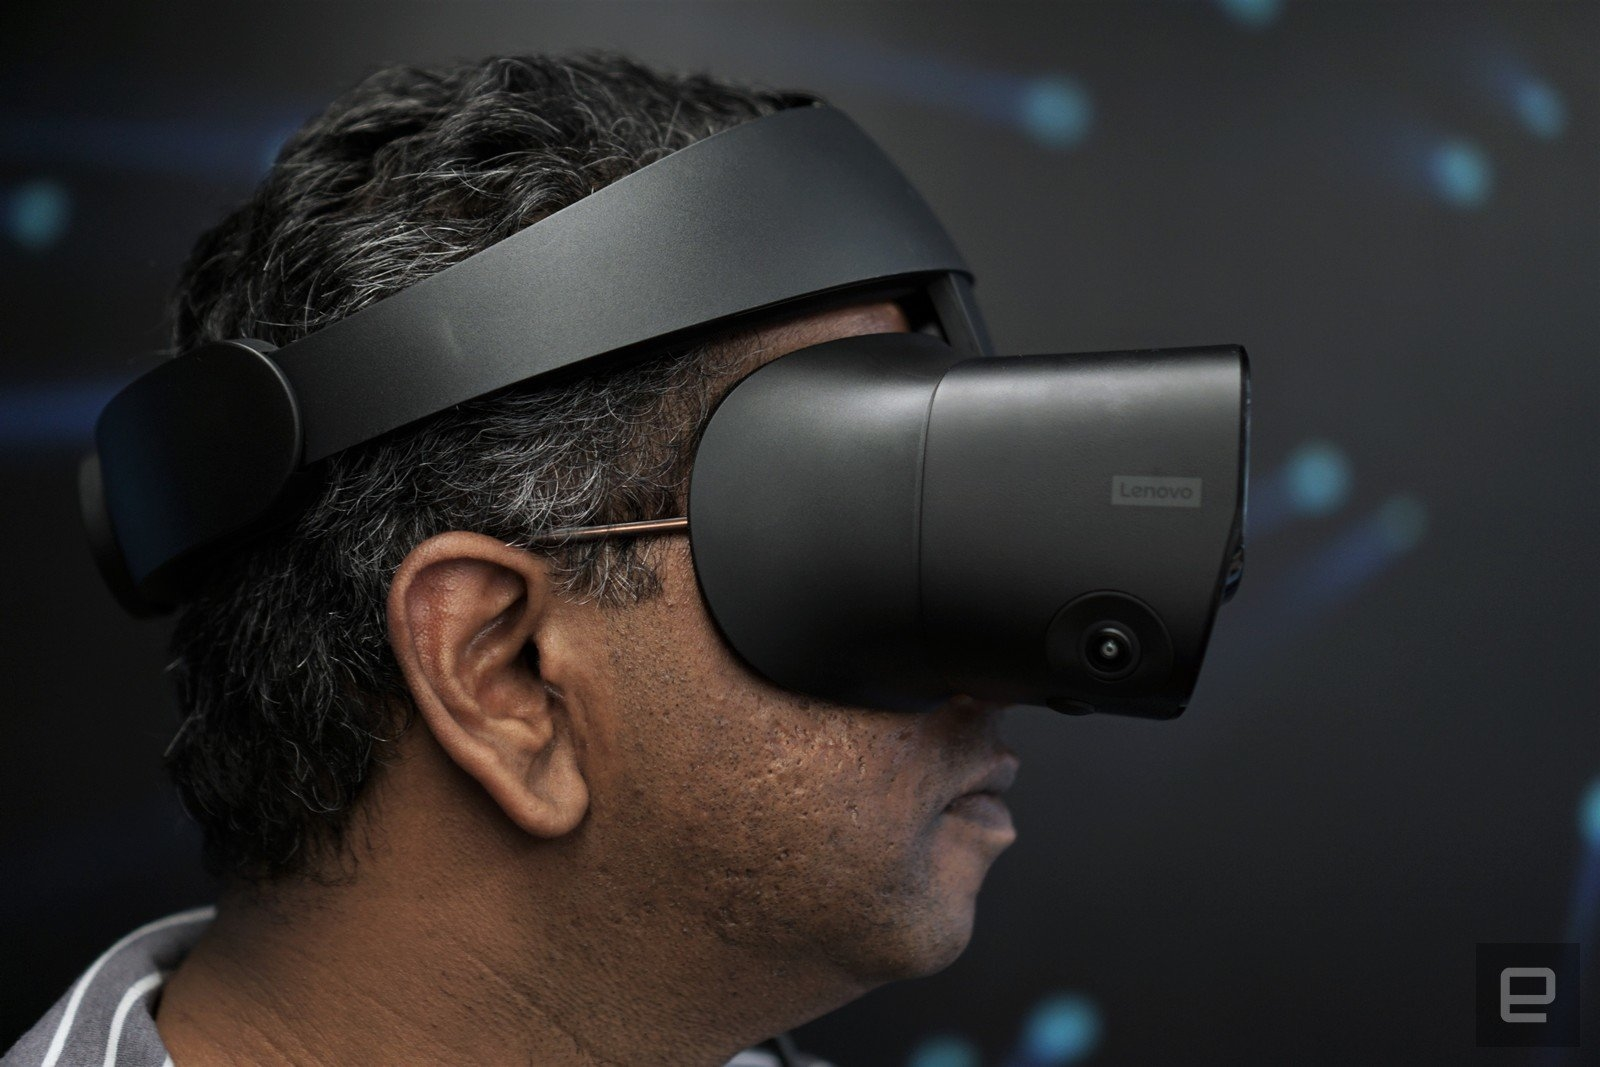 Oculus Rift S review: Just another tethered VR headset | DeviceDaily.com